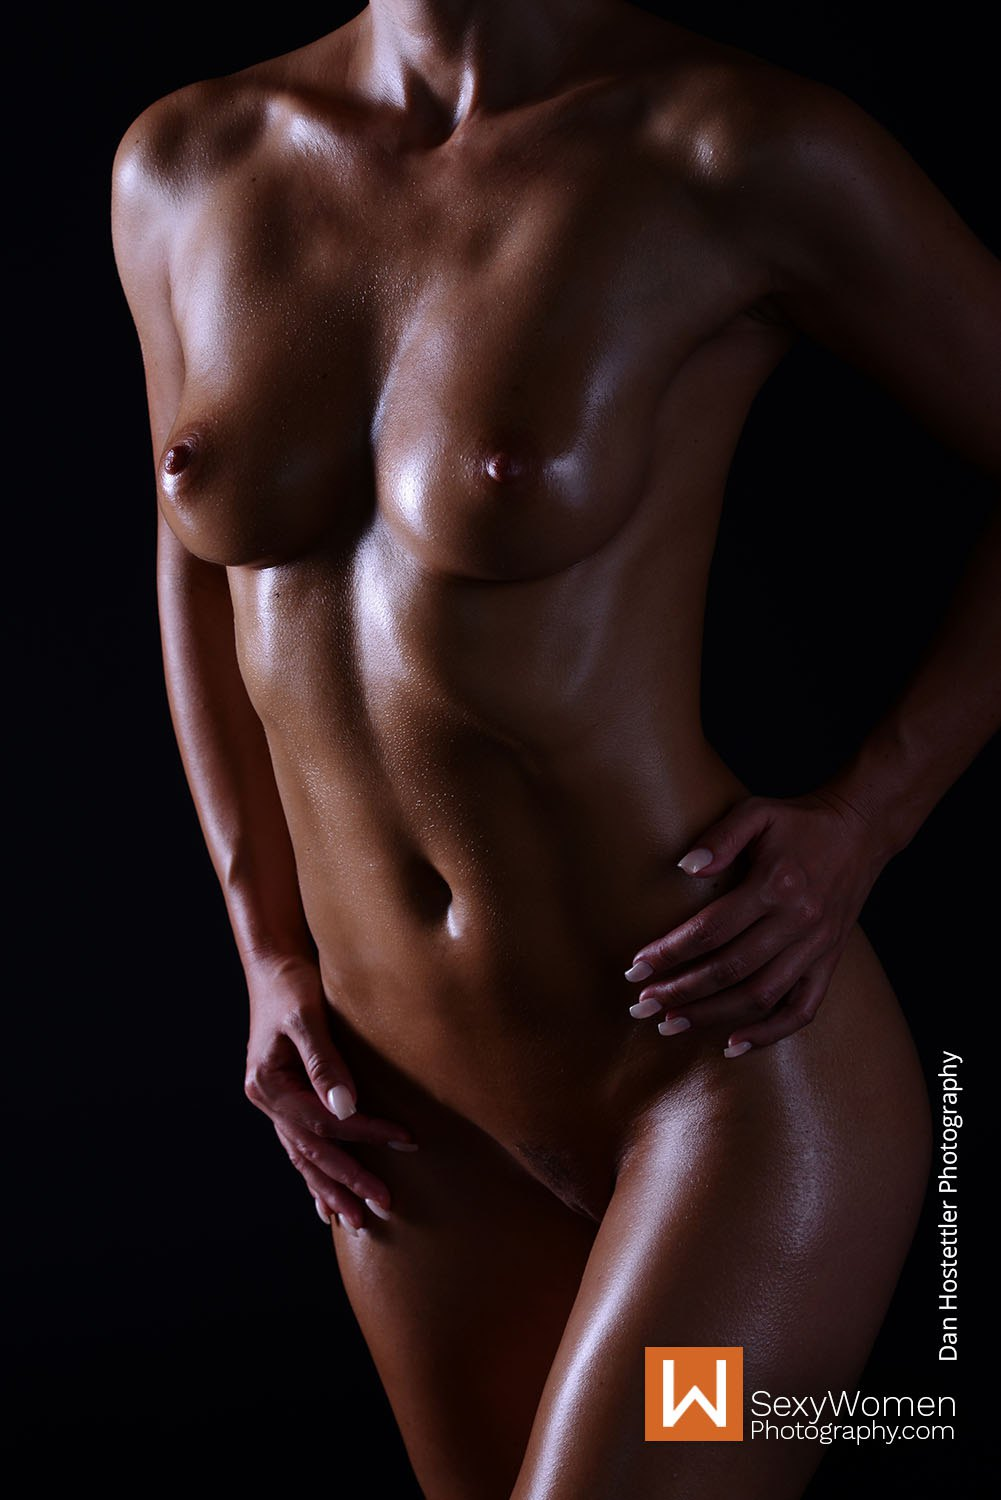 Final Image - Bodyscape Art Nudes with Melisa Mendini